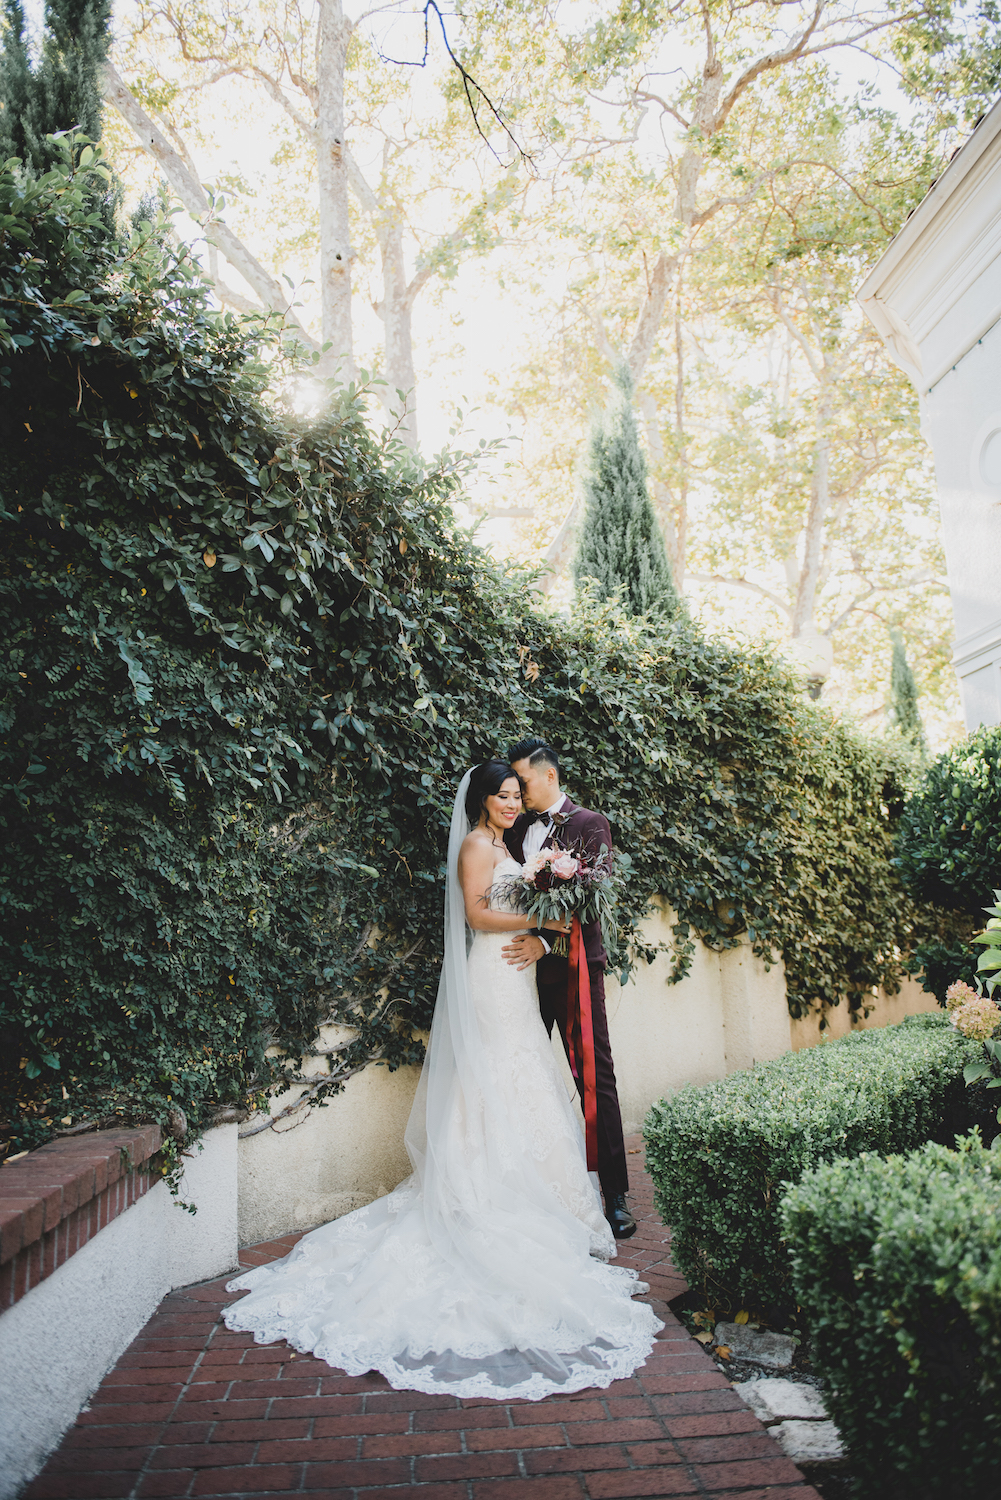 THE DETAILS - DRESS: ALLURE BRIDALSPHOTOGRAPHER: LIZ ZIMBELMAN PHOTOGRAPHYVENUE: VIZCAYA